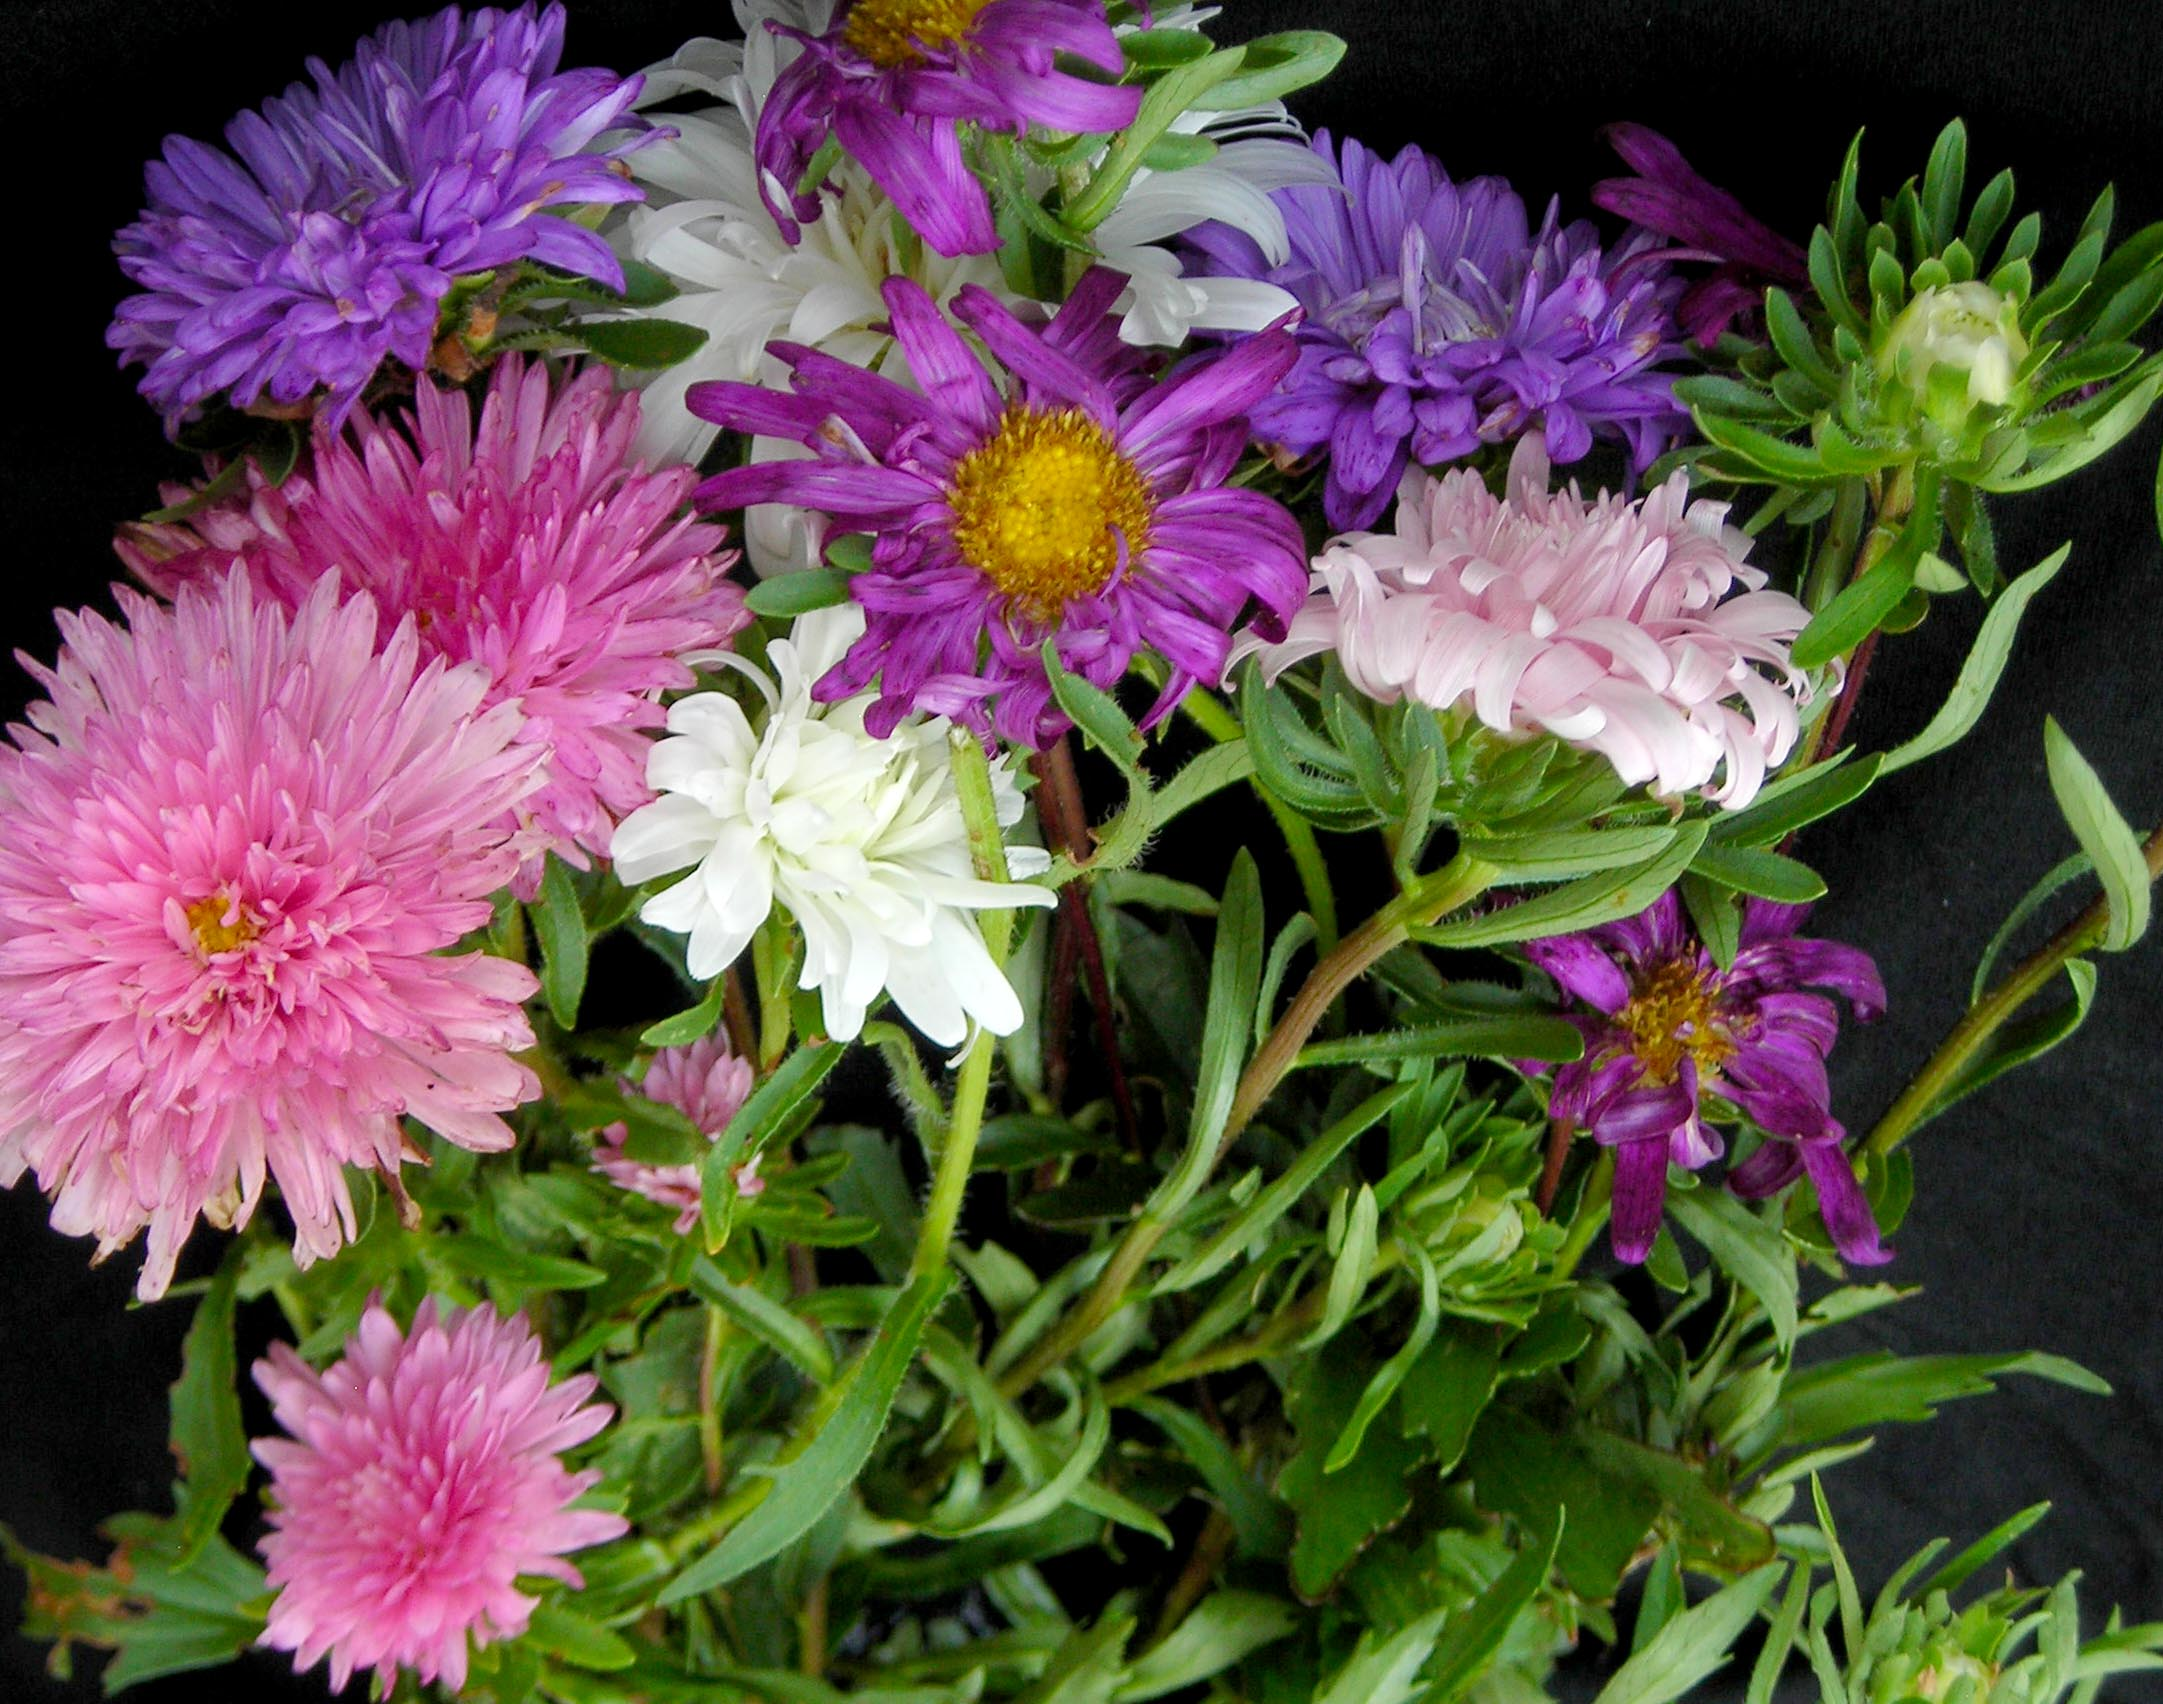 Aster Crego Giant Mixed Colors 01 G Southern Exposure Seed